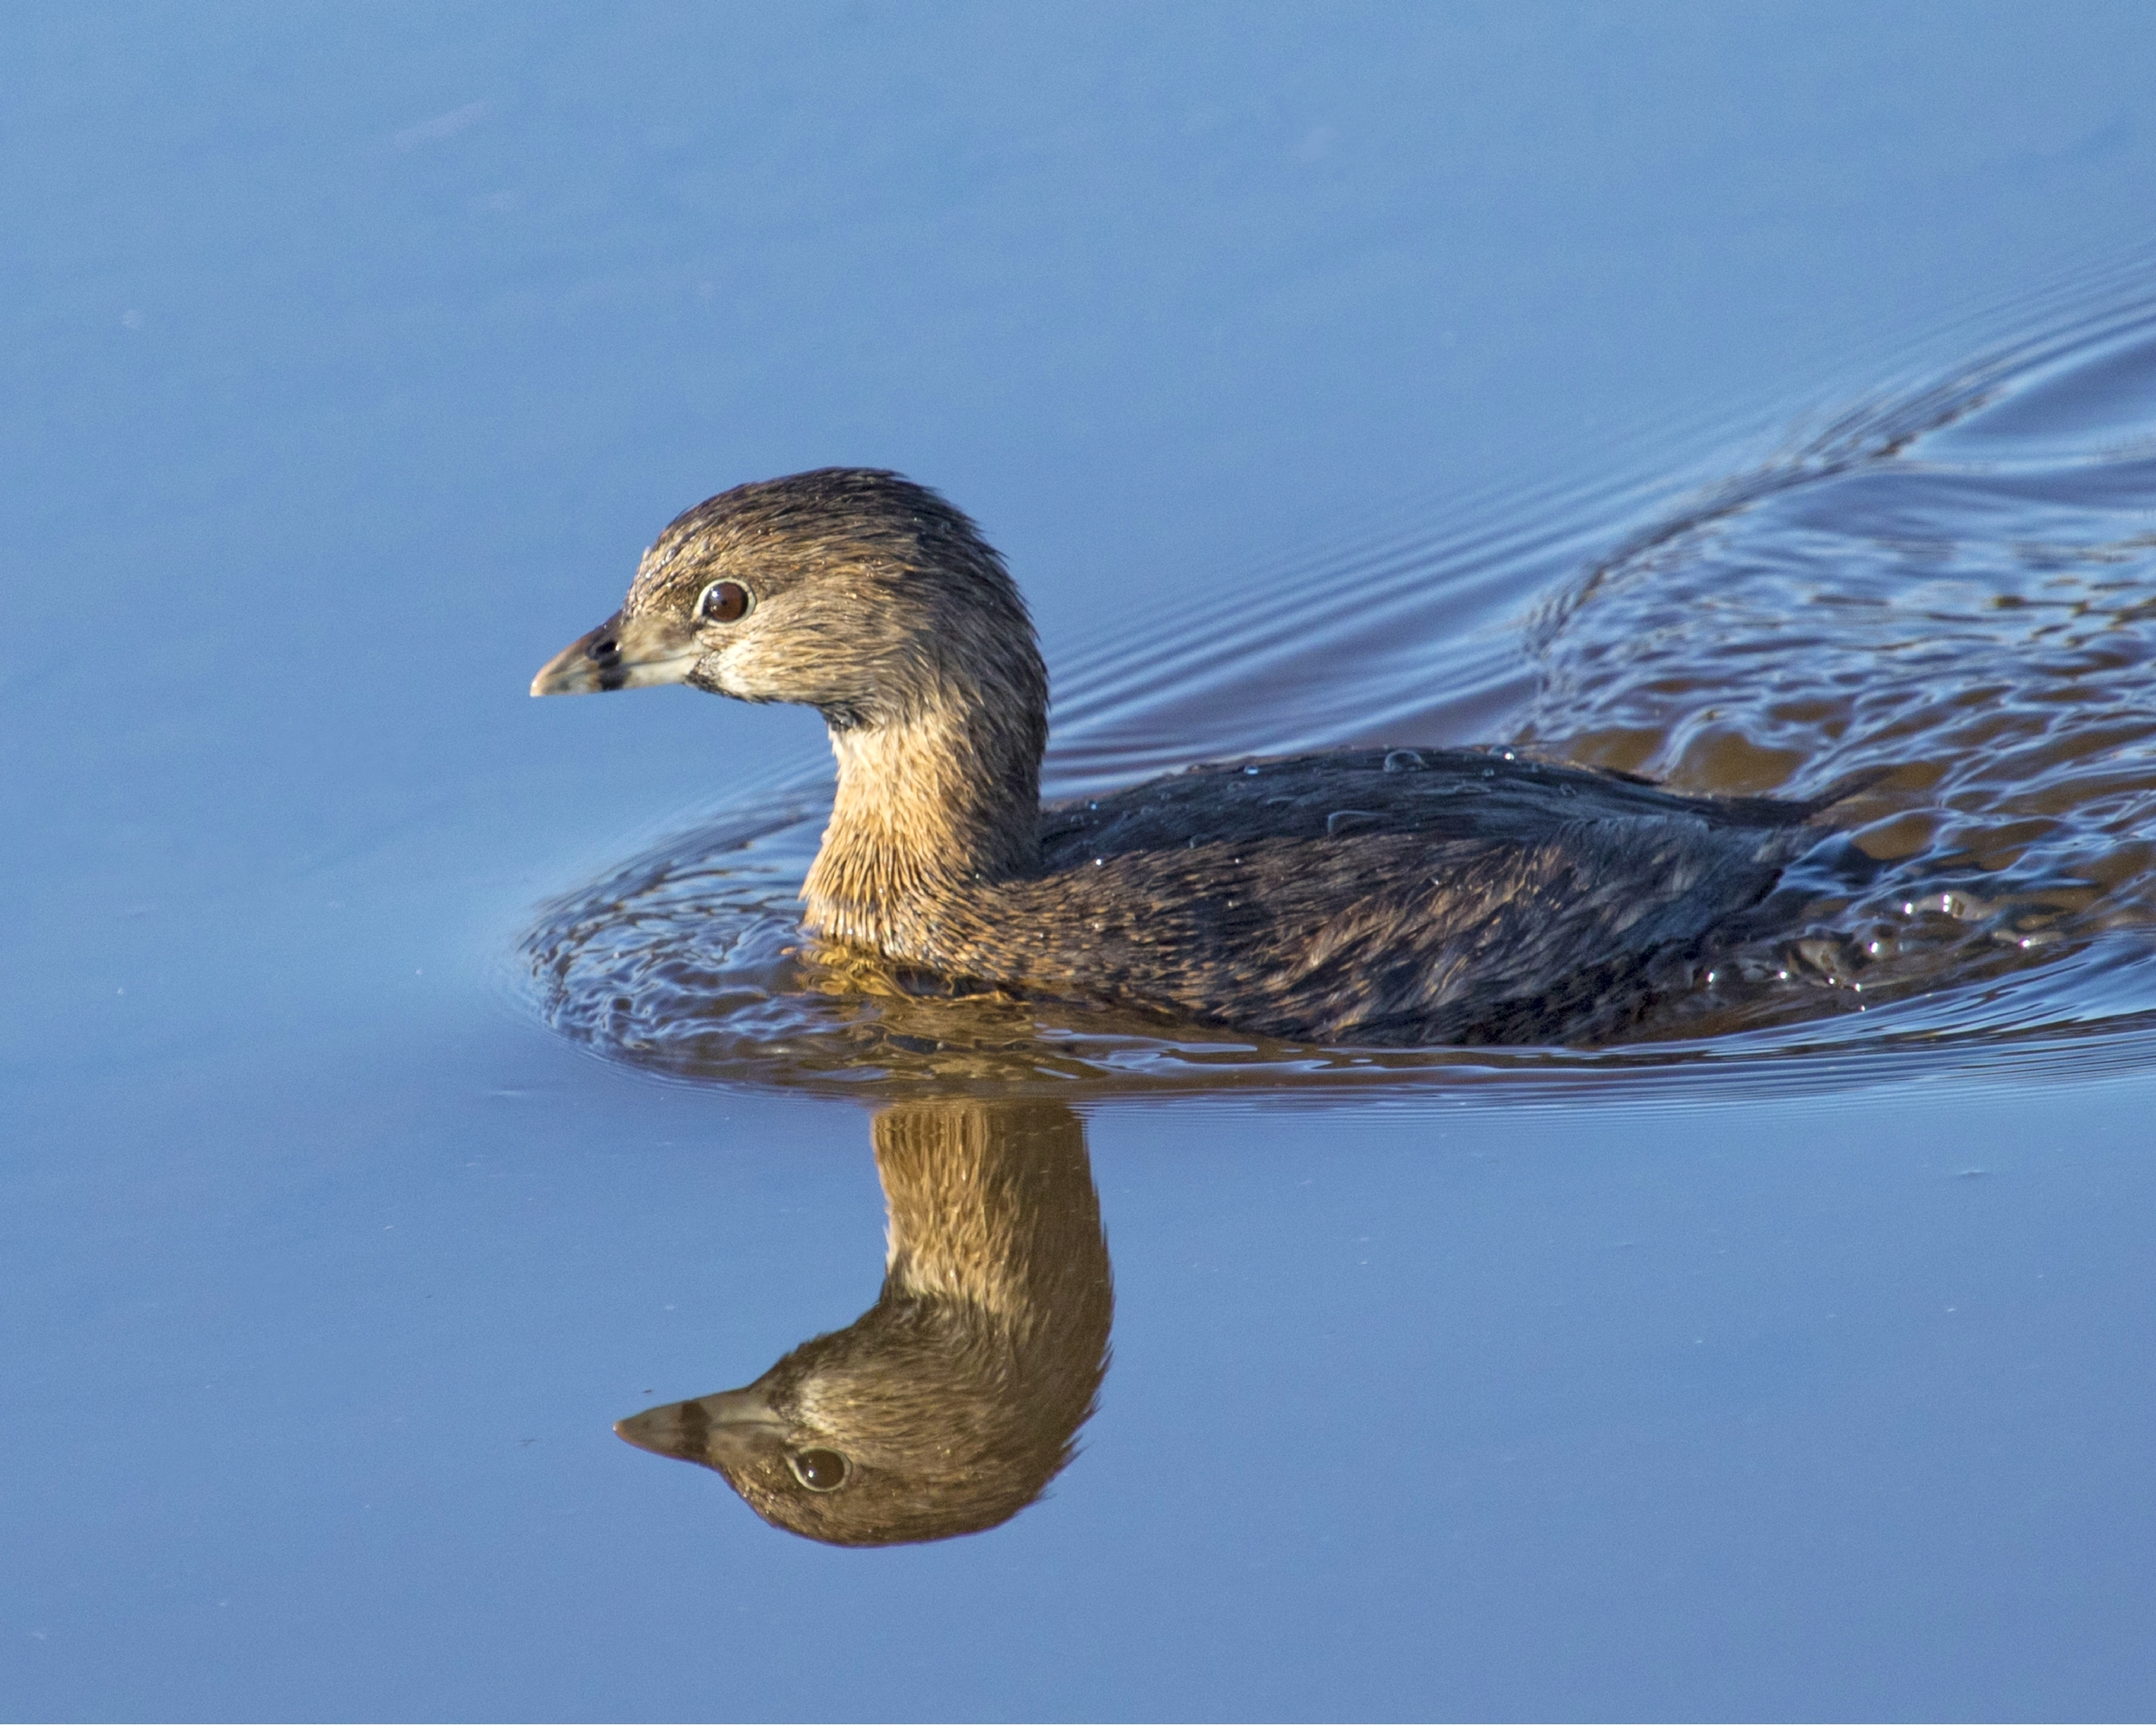 The Pied-billed Grebe didn't see its shadow so Spring will be here 20 Mar 16 rain or shine..